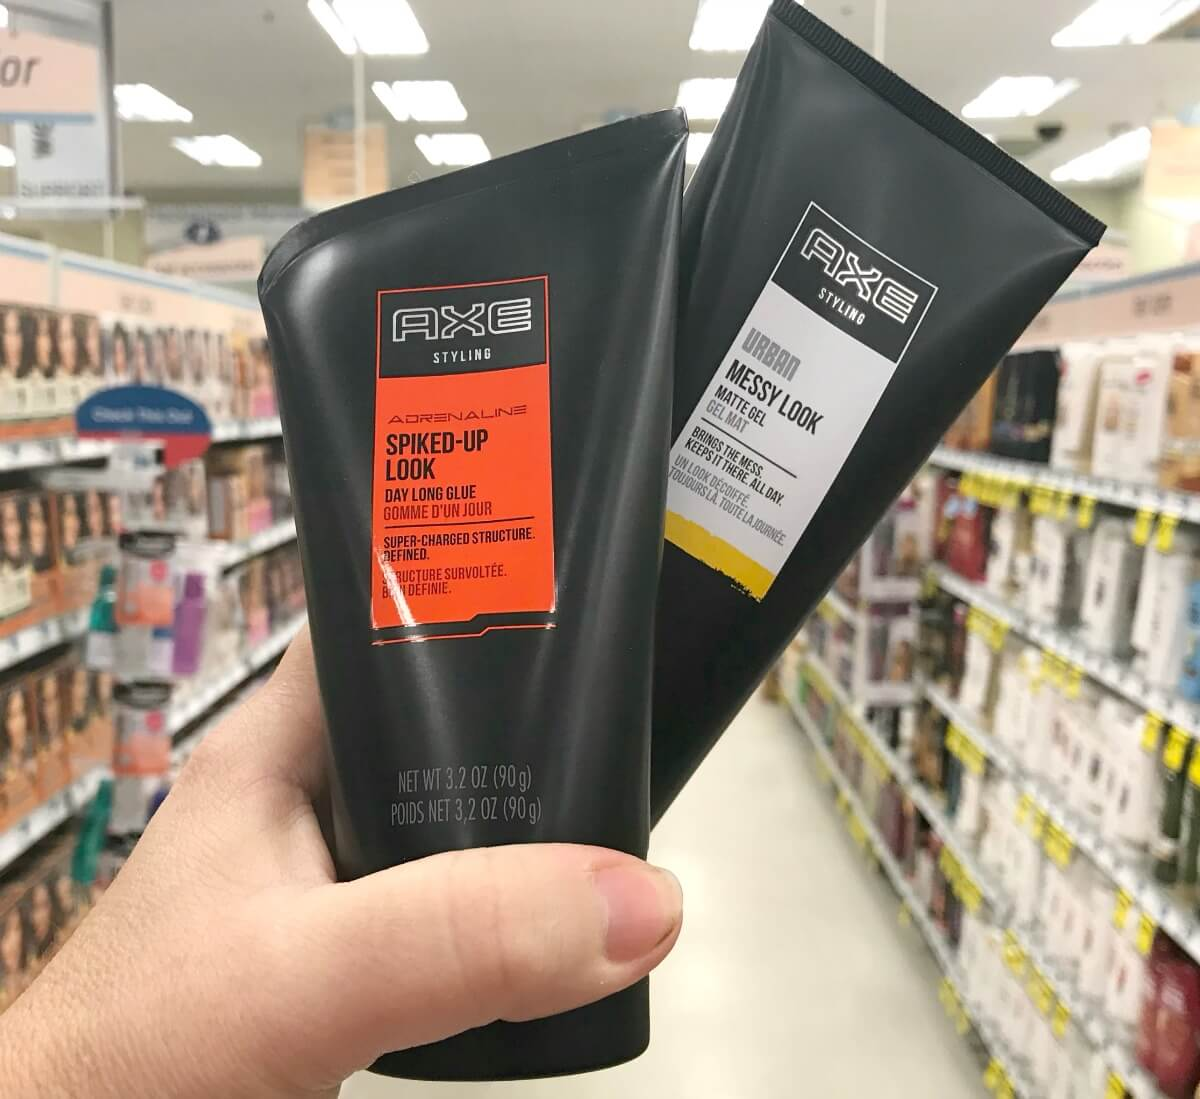 2 FREE + $1 Money Maker on Axe Shampoo & Styling Products at ShopRite!